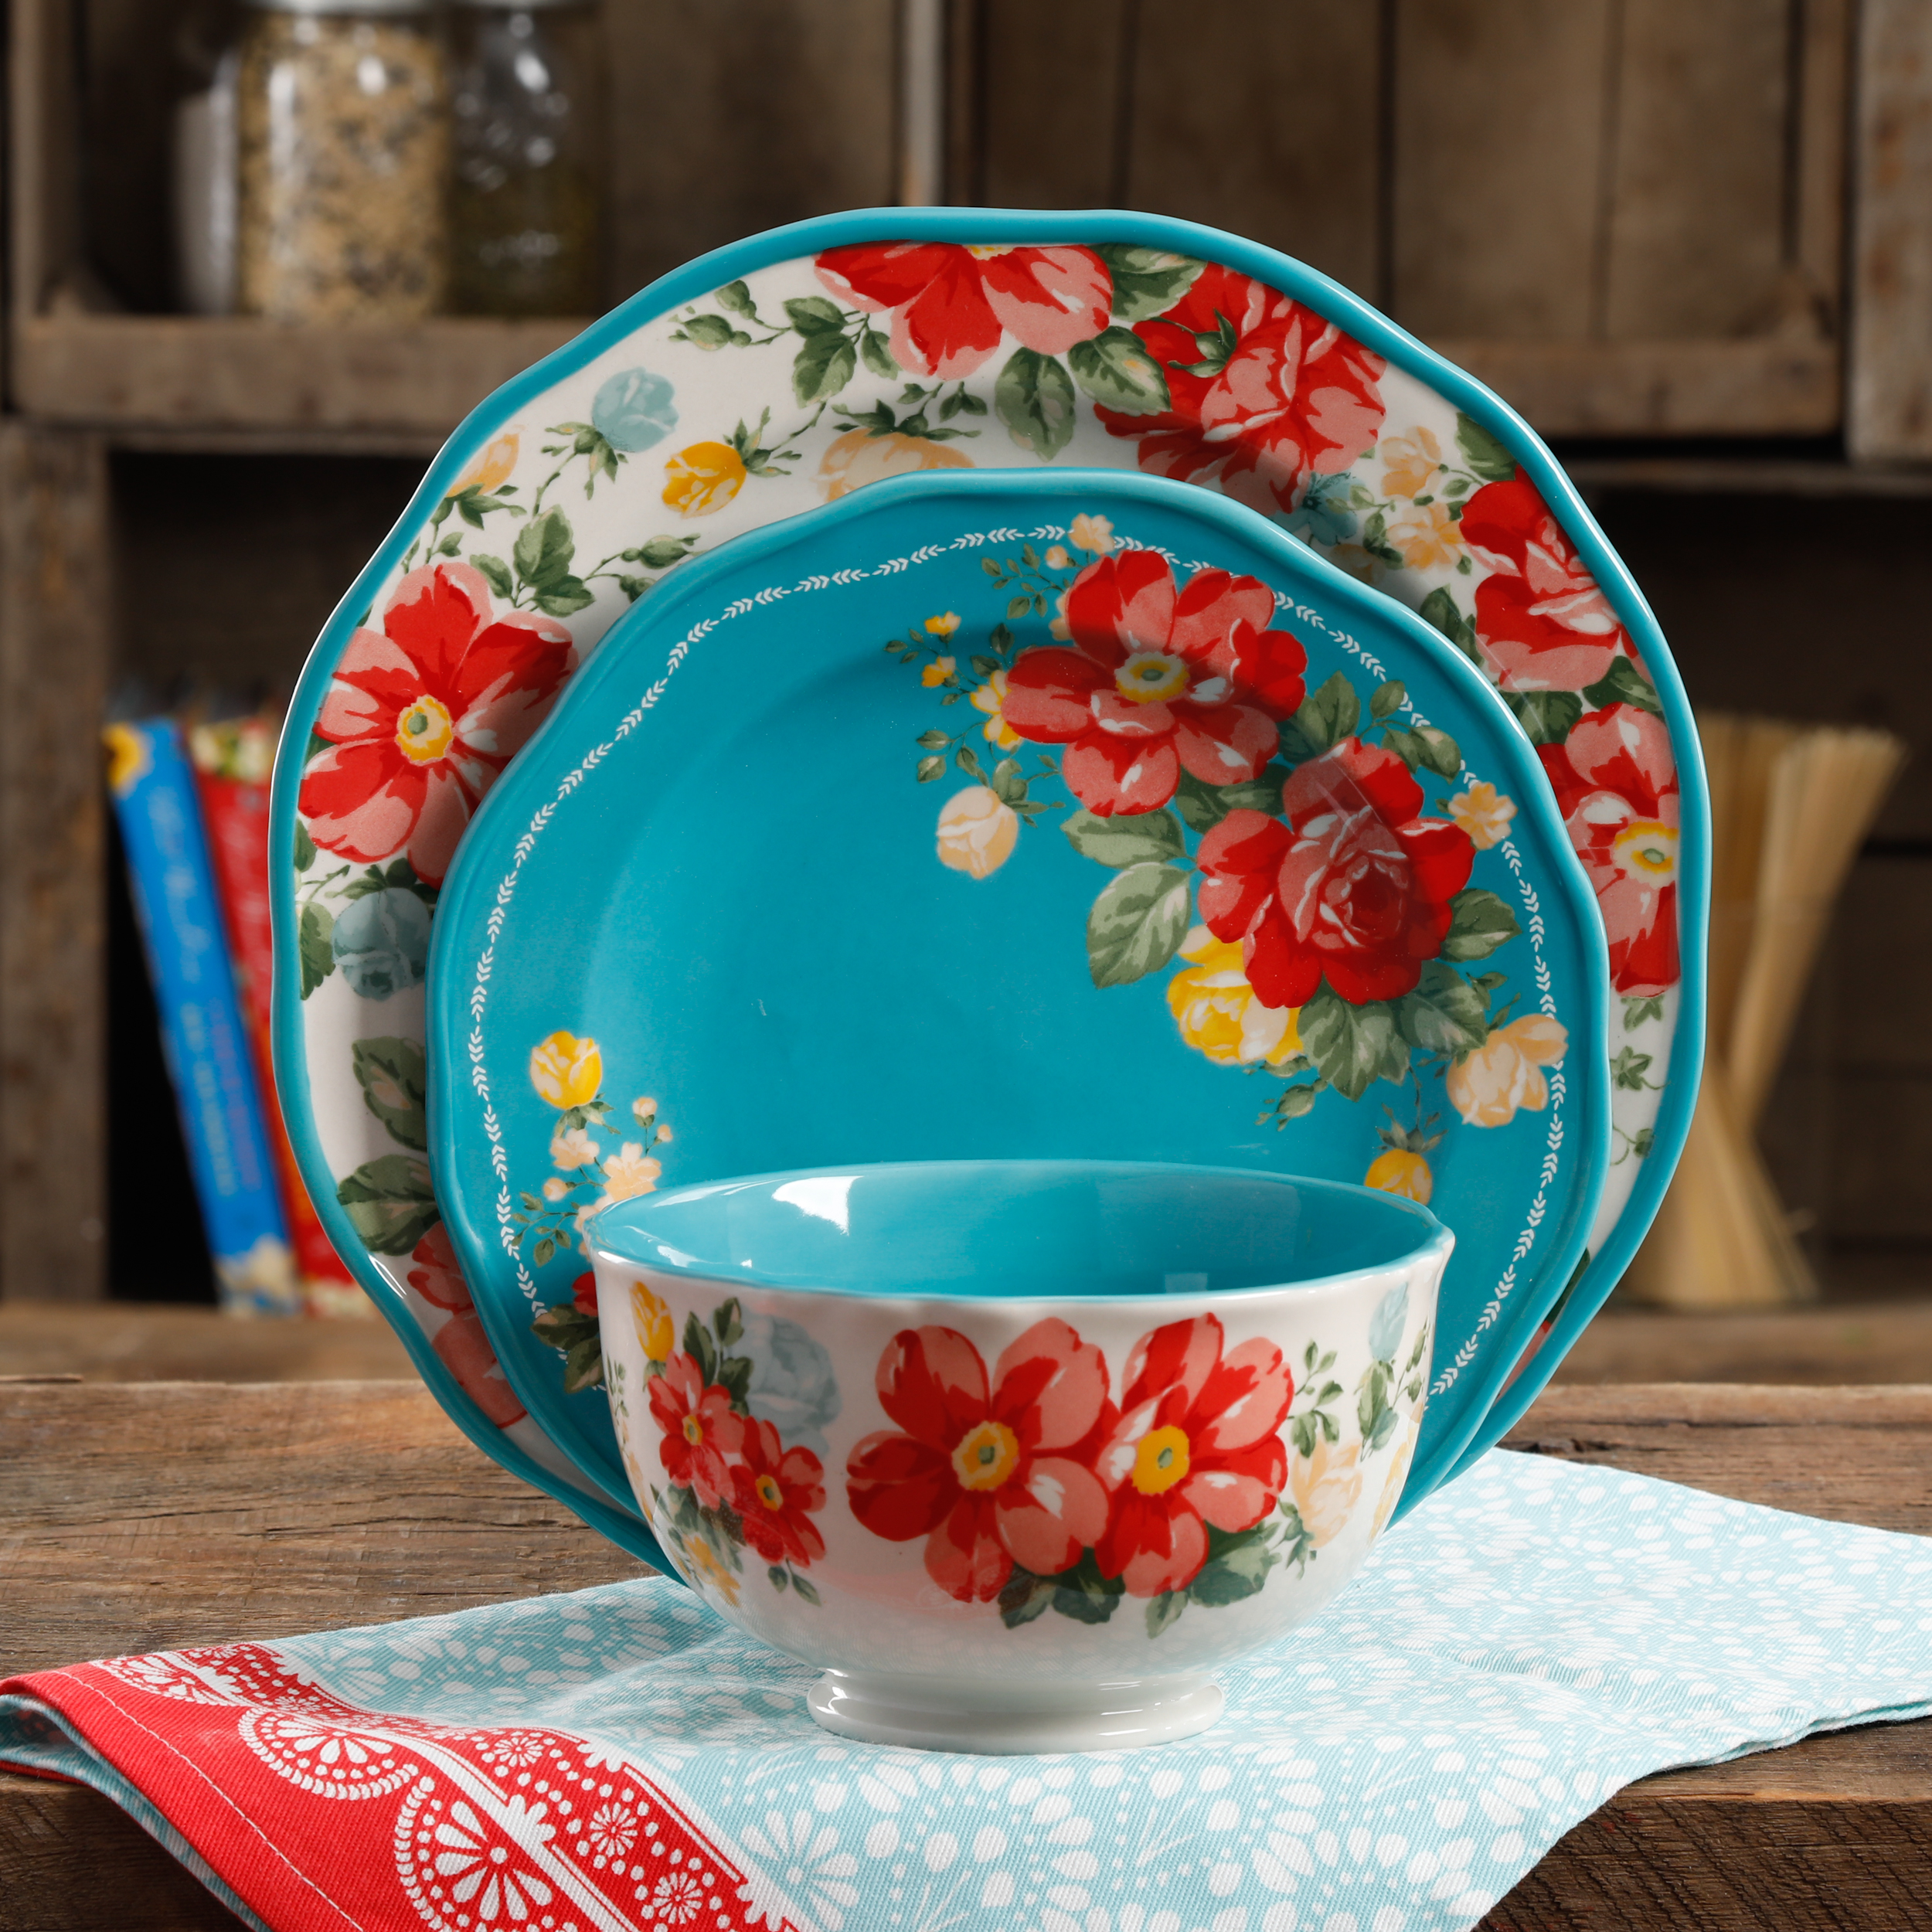 The Pioneer Woman Vintage Floral 12Pc Dinnerware Set Walmart Exclusive